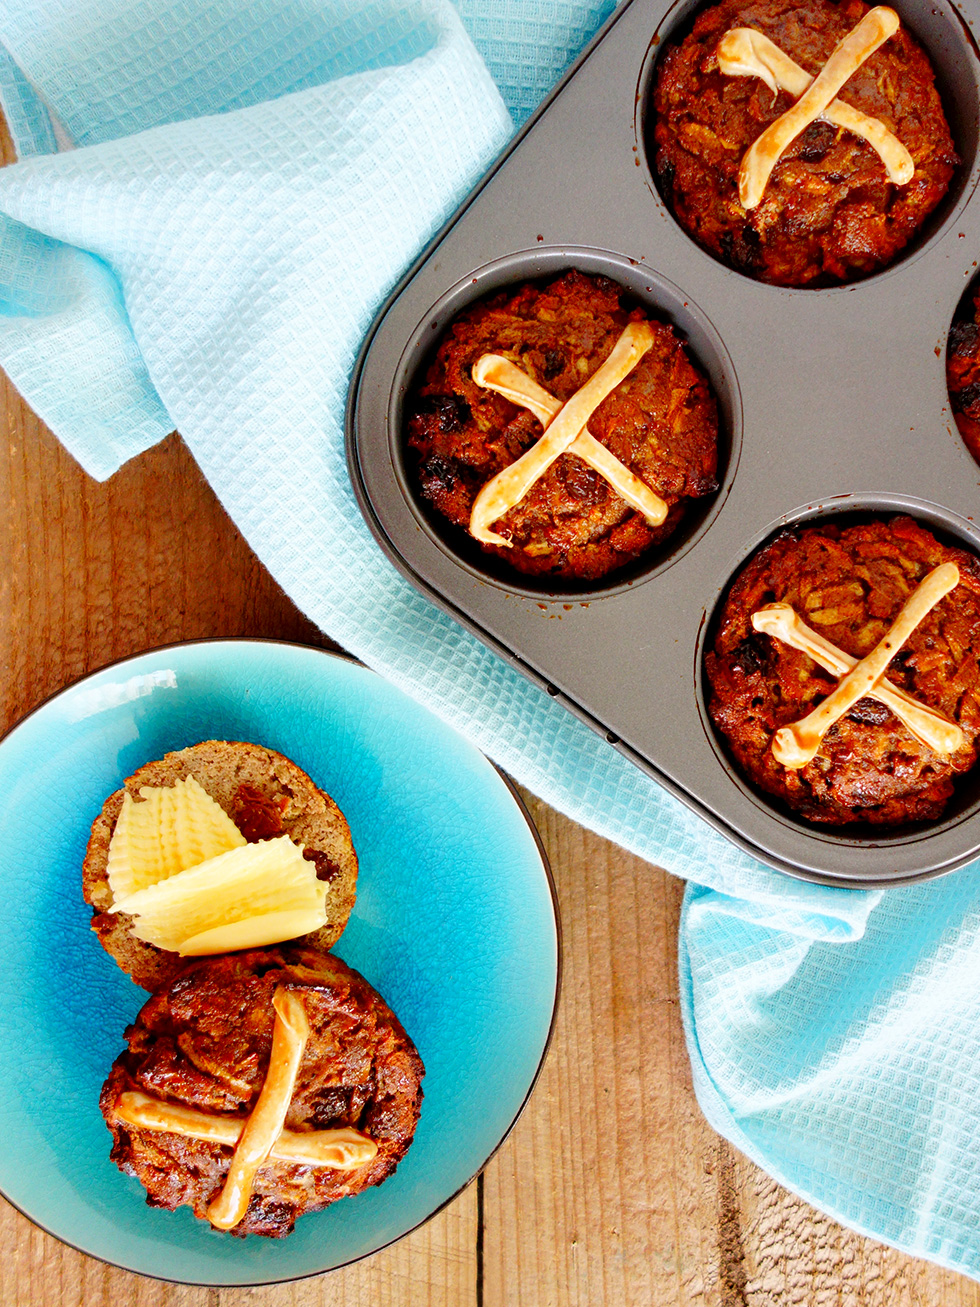 Easter Hot Cross Buns - Paleo, Gluten and Refined Sugar Free